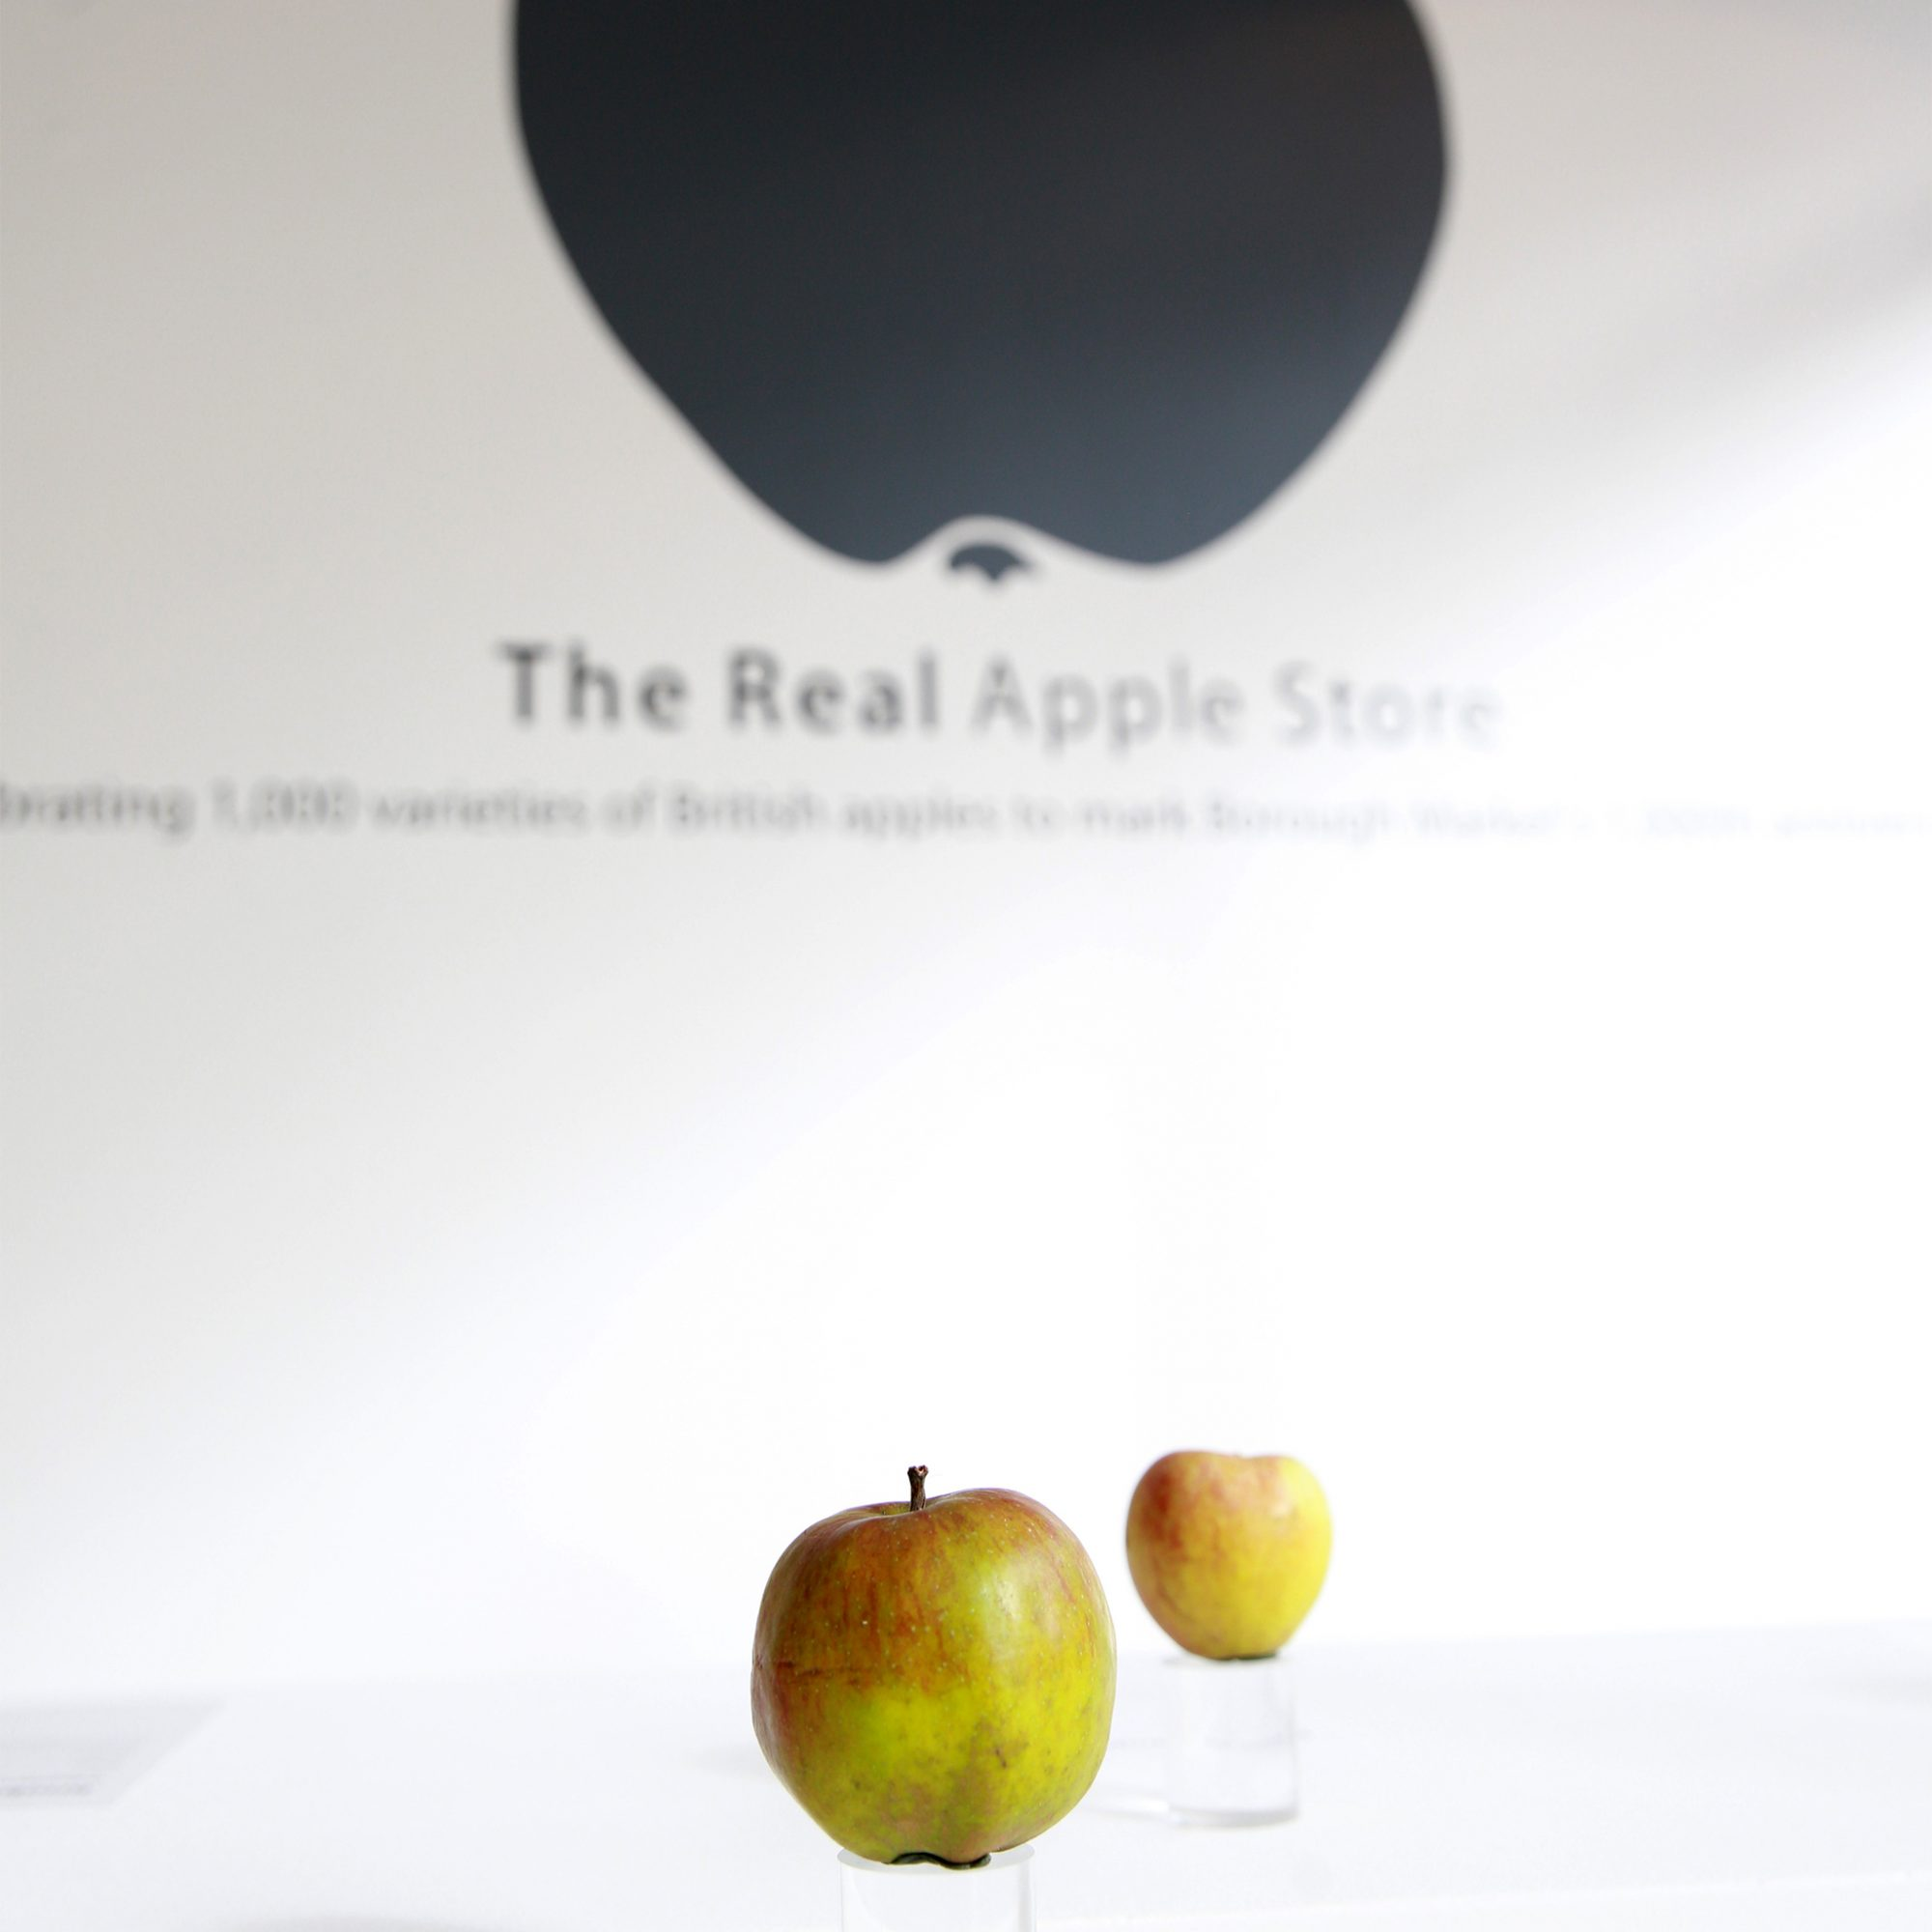 London's Real Apple Store Had Fruit, Not iPhones